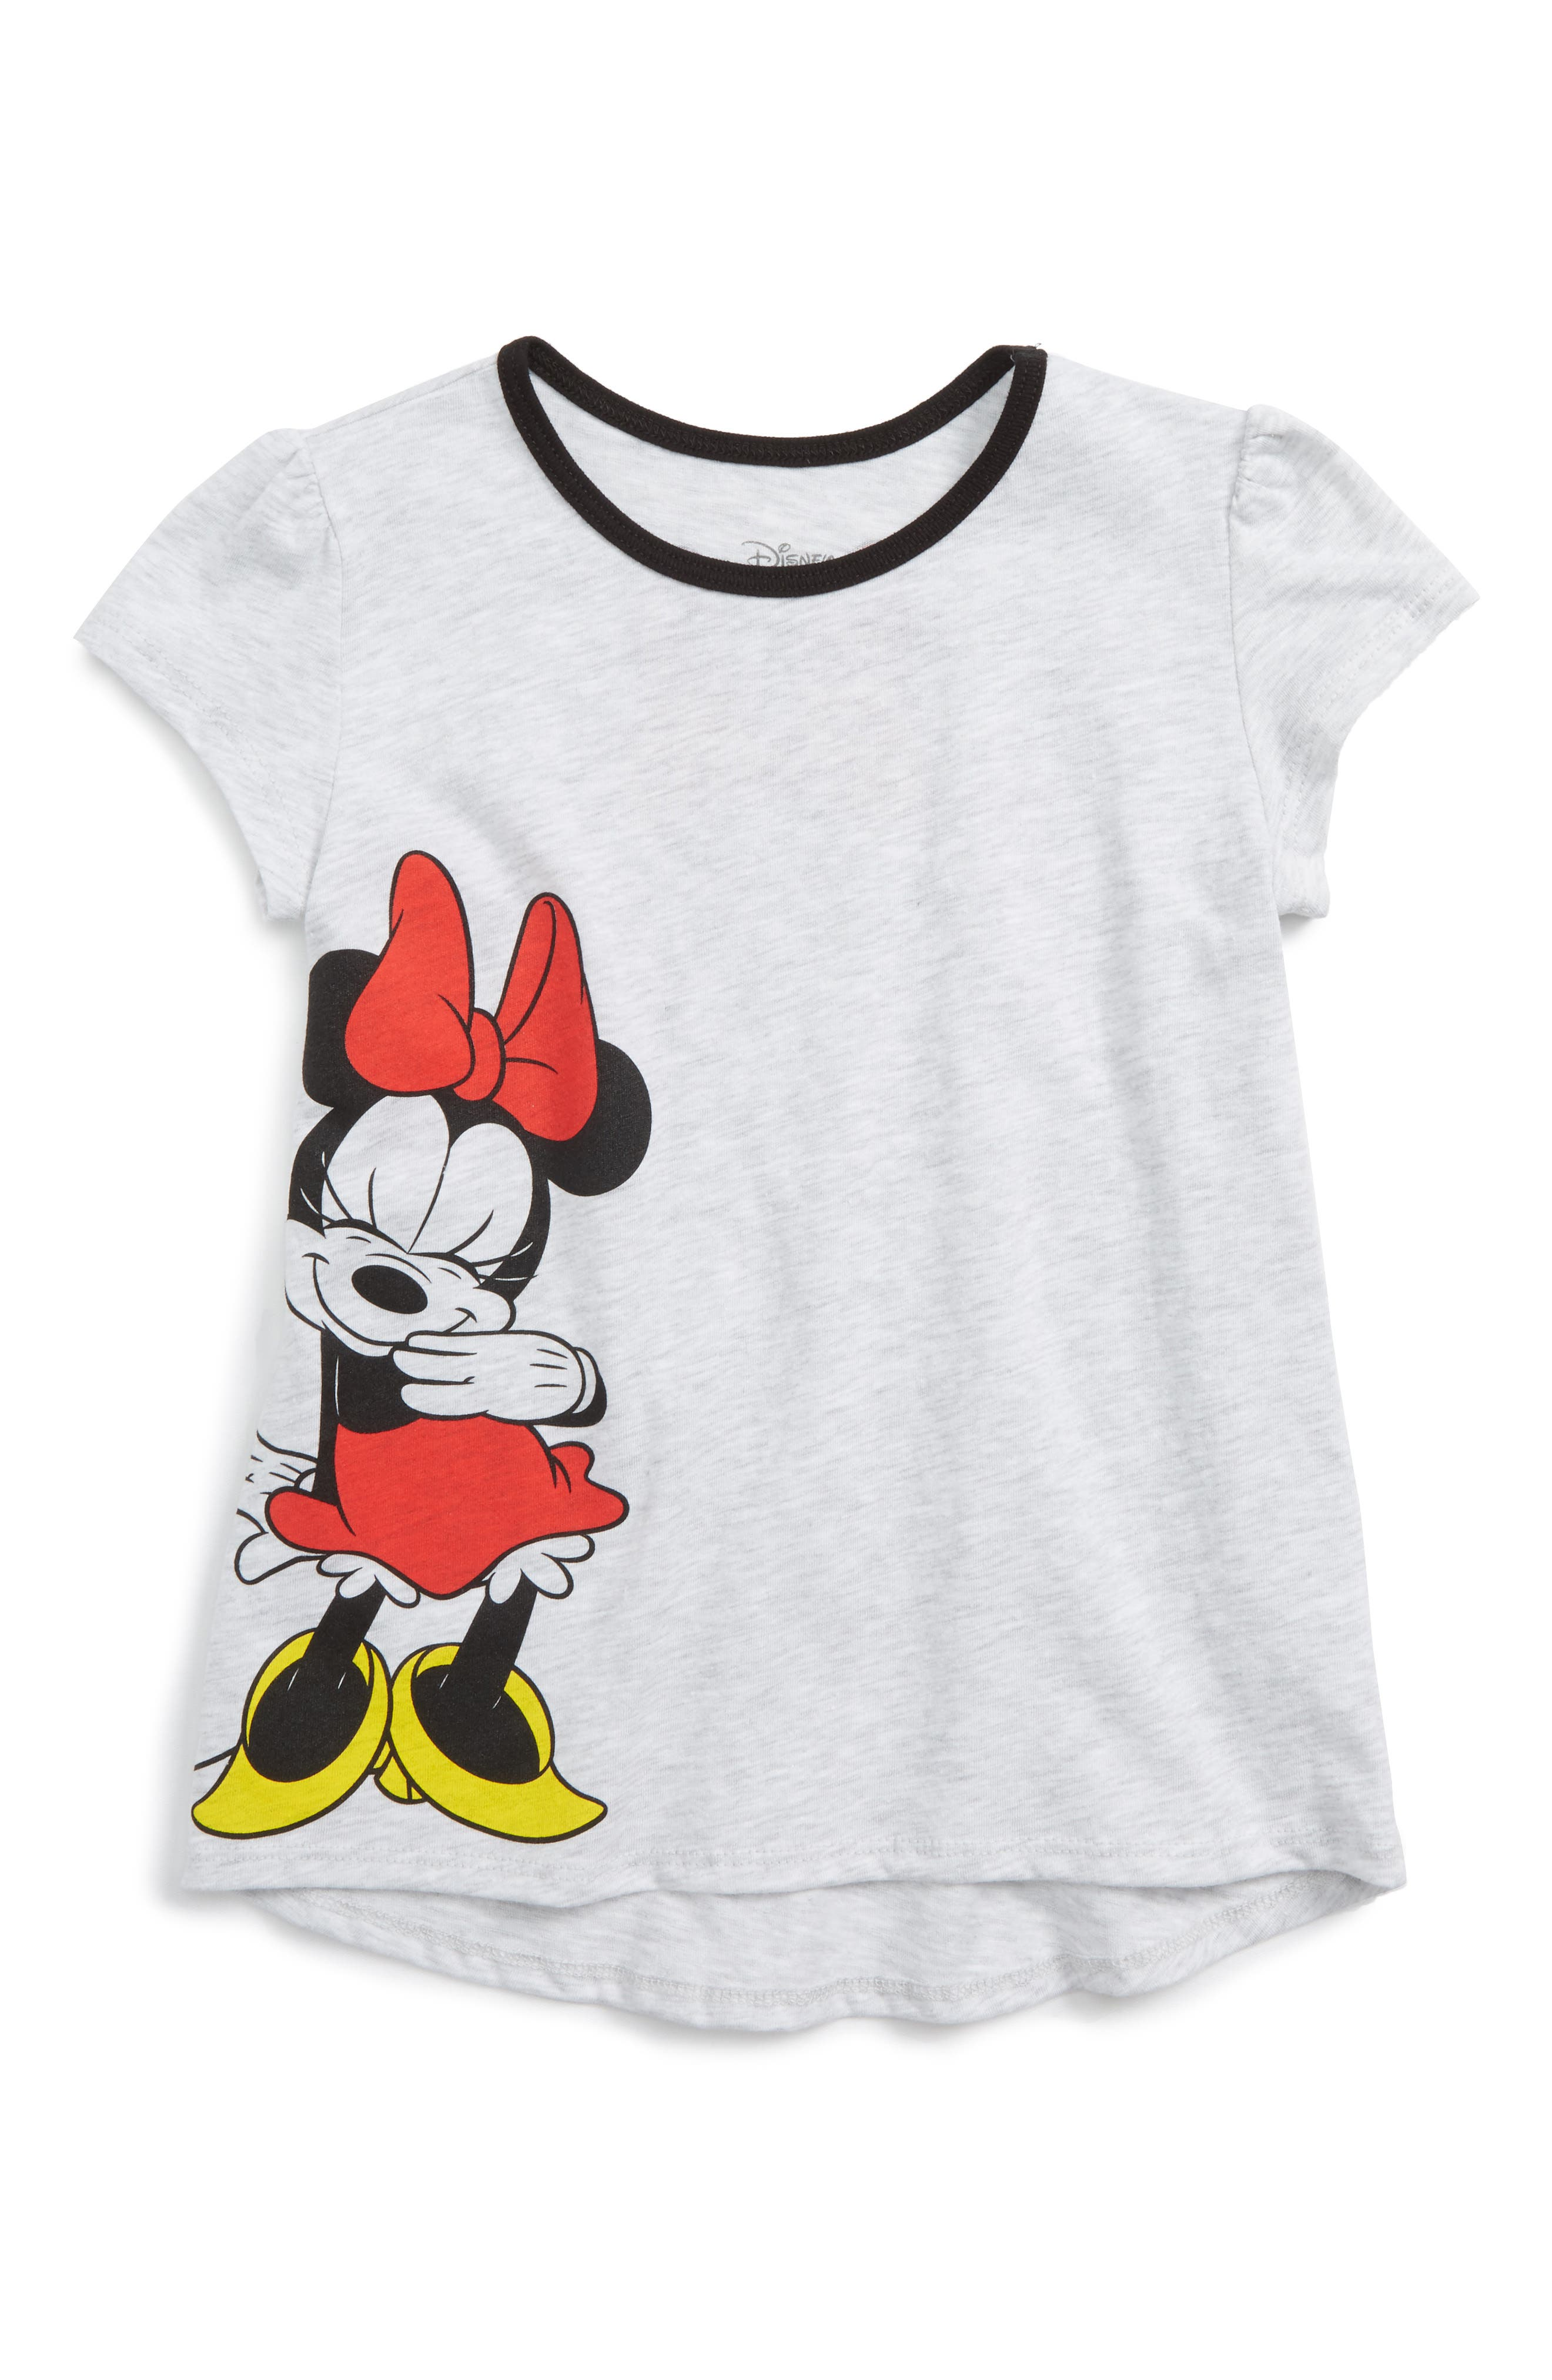 Main Image - Mighty Fine Disney - Minnie Mouse Graphic Tee (Toddler Girls, Little Girls & Big Girls)